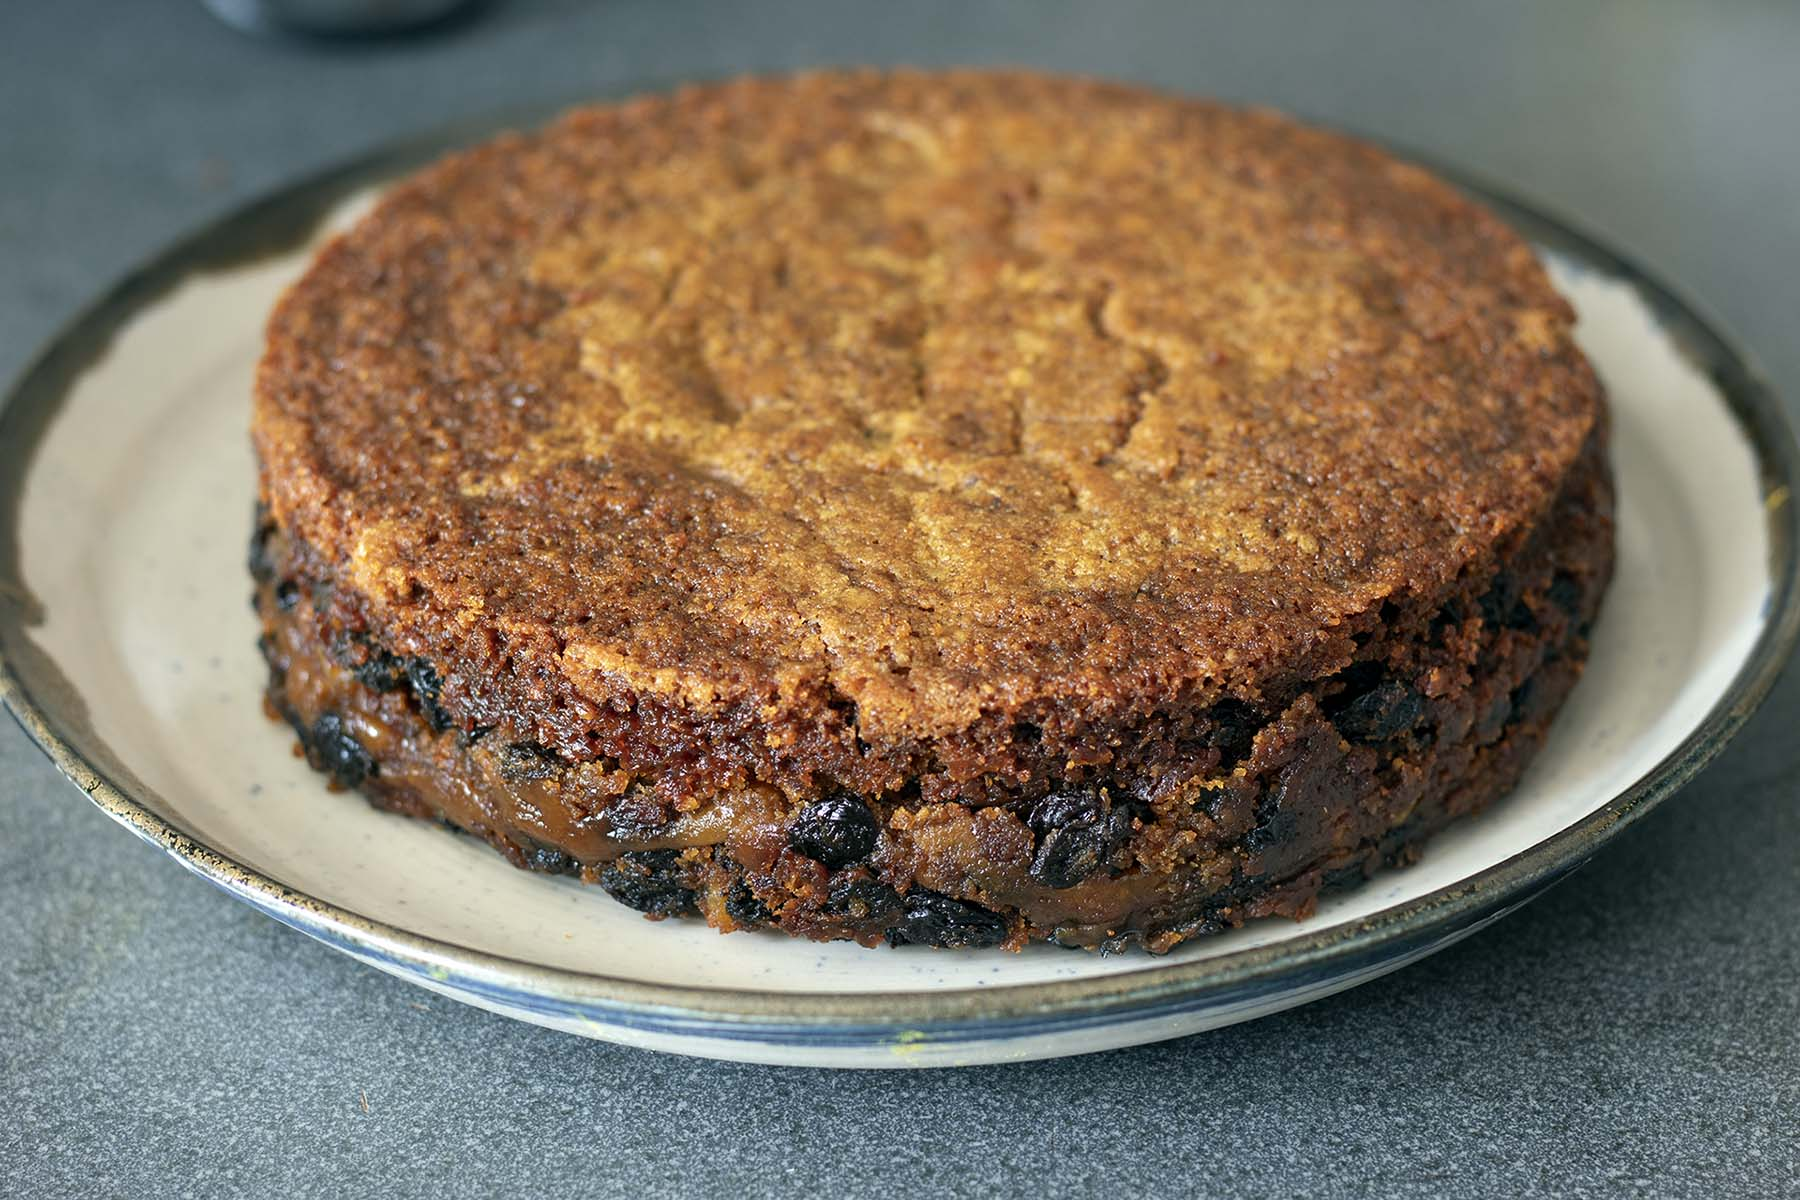 cooked simnel cake on plate